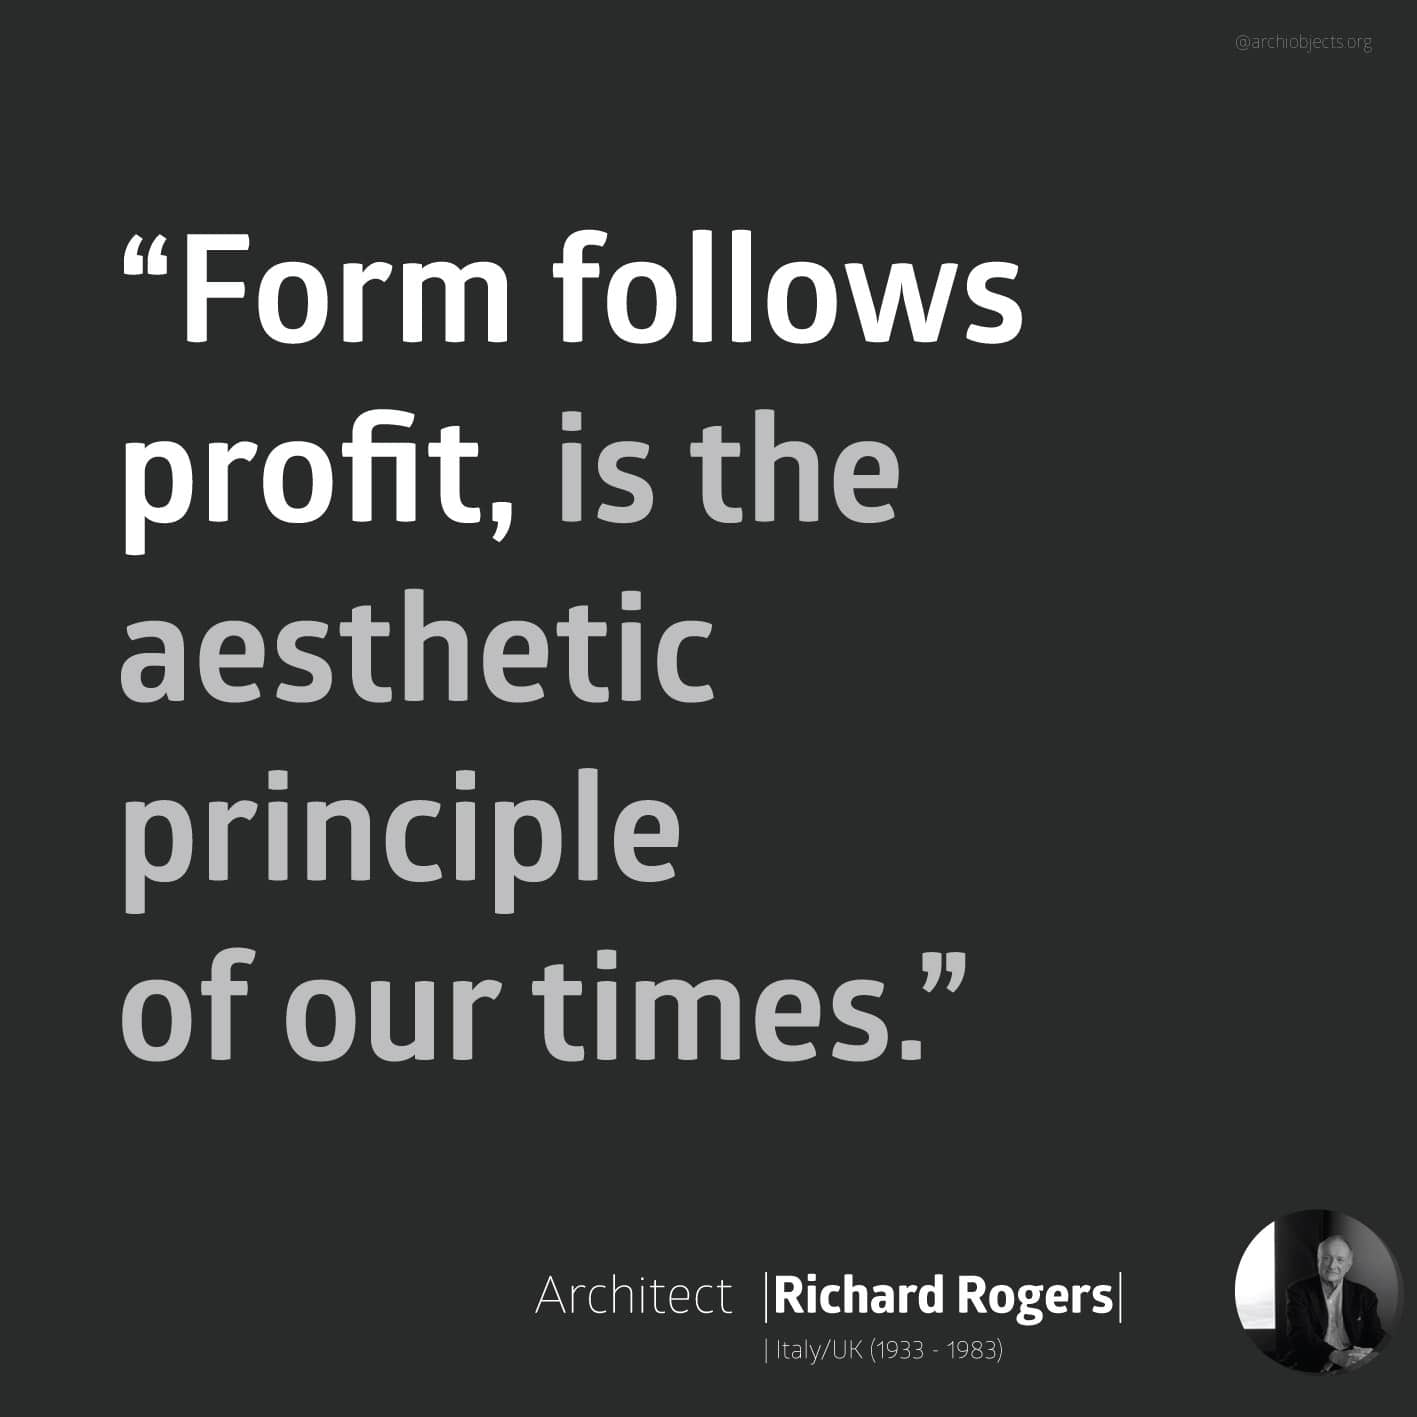 richard rogers quote